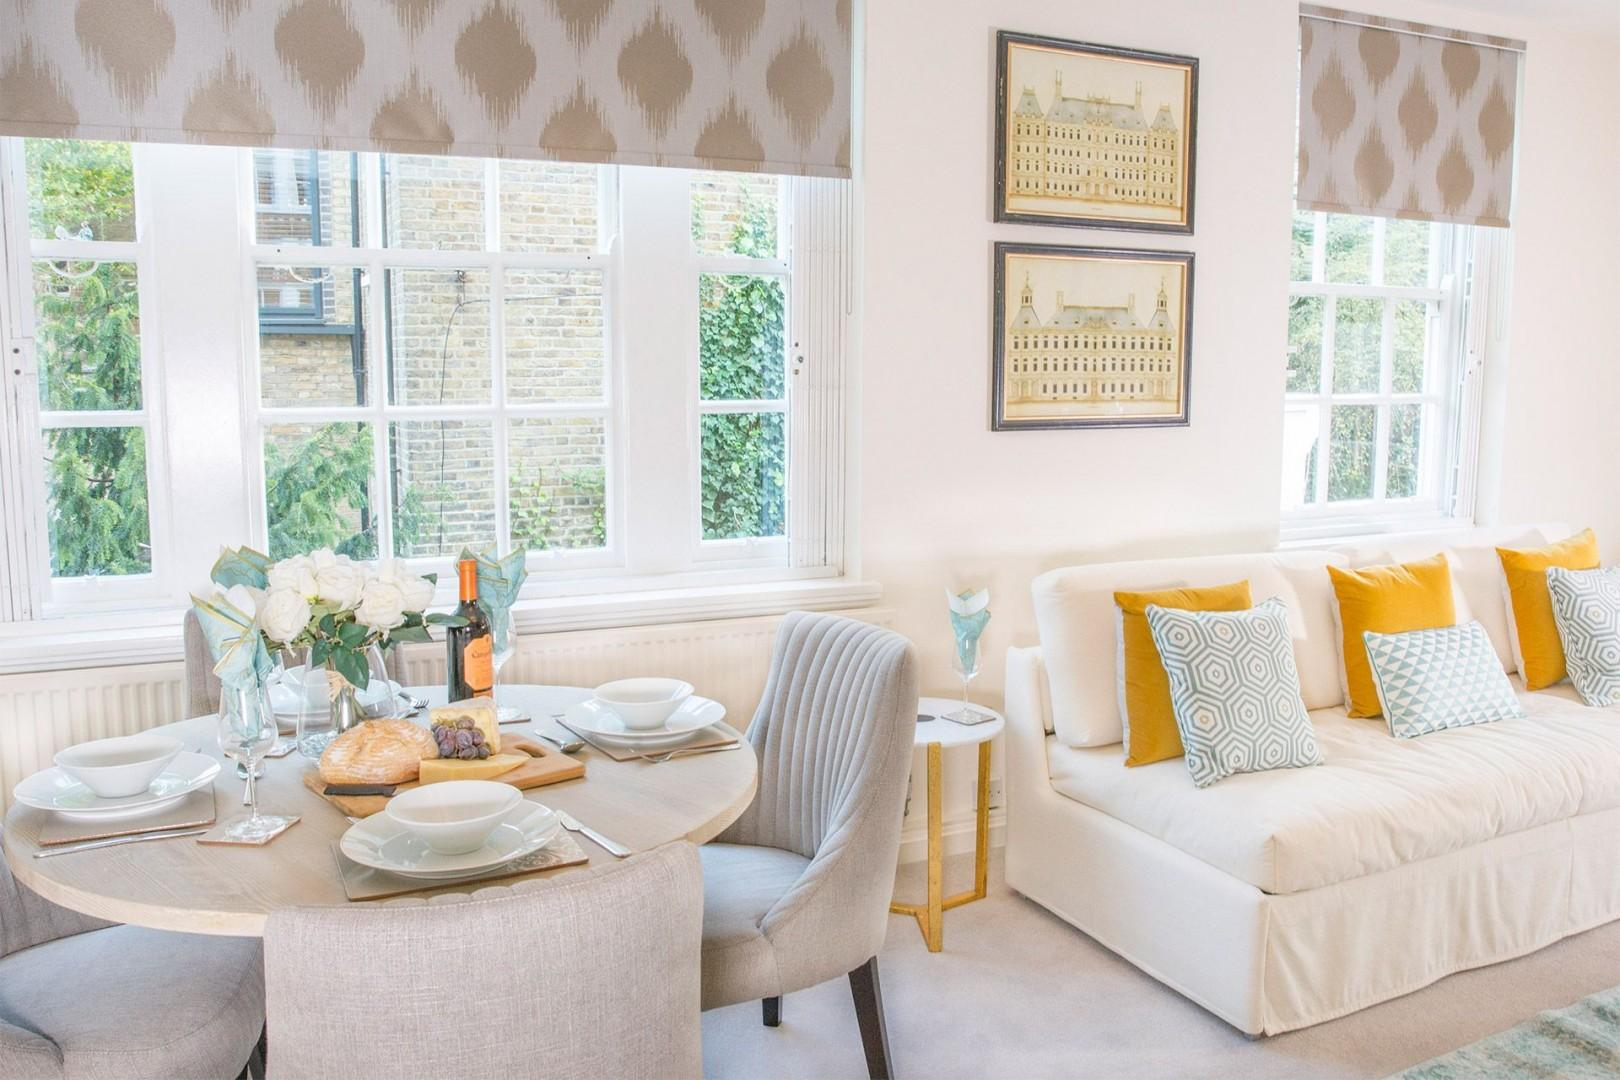 The open plan living and dining area is perfect for entertaining